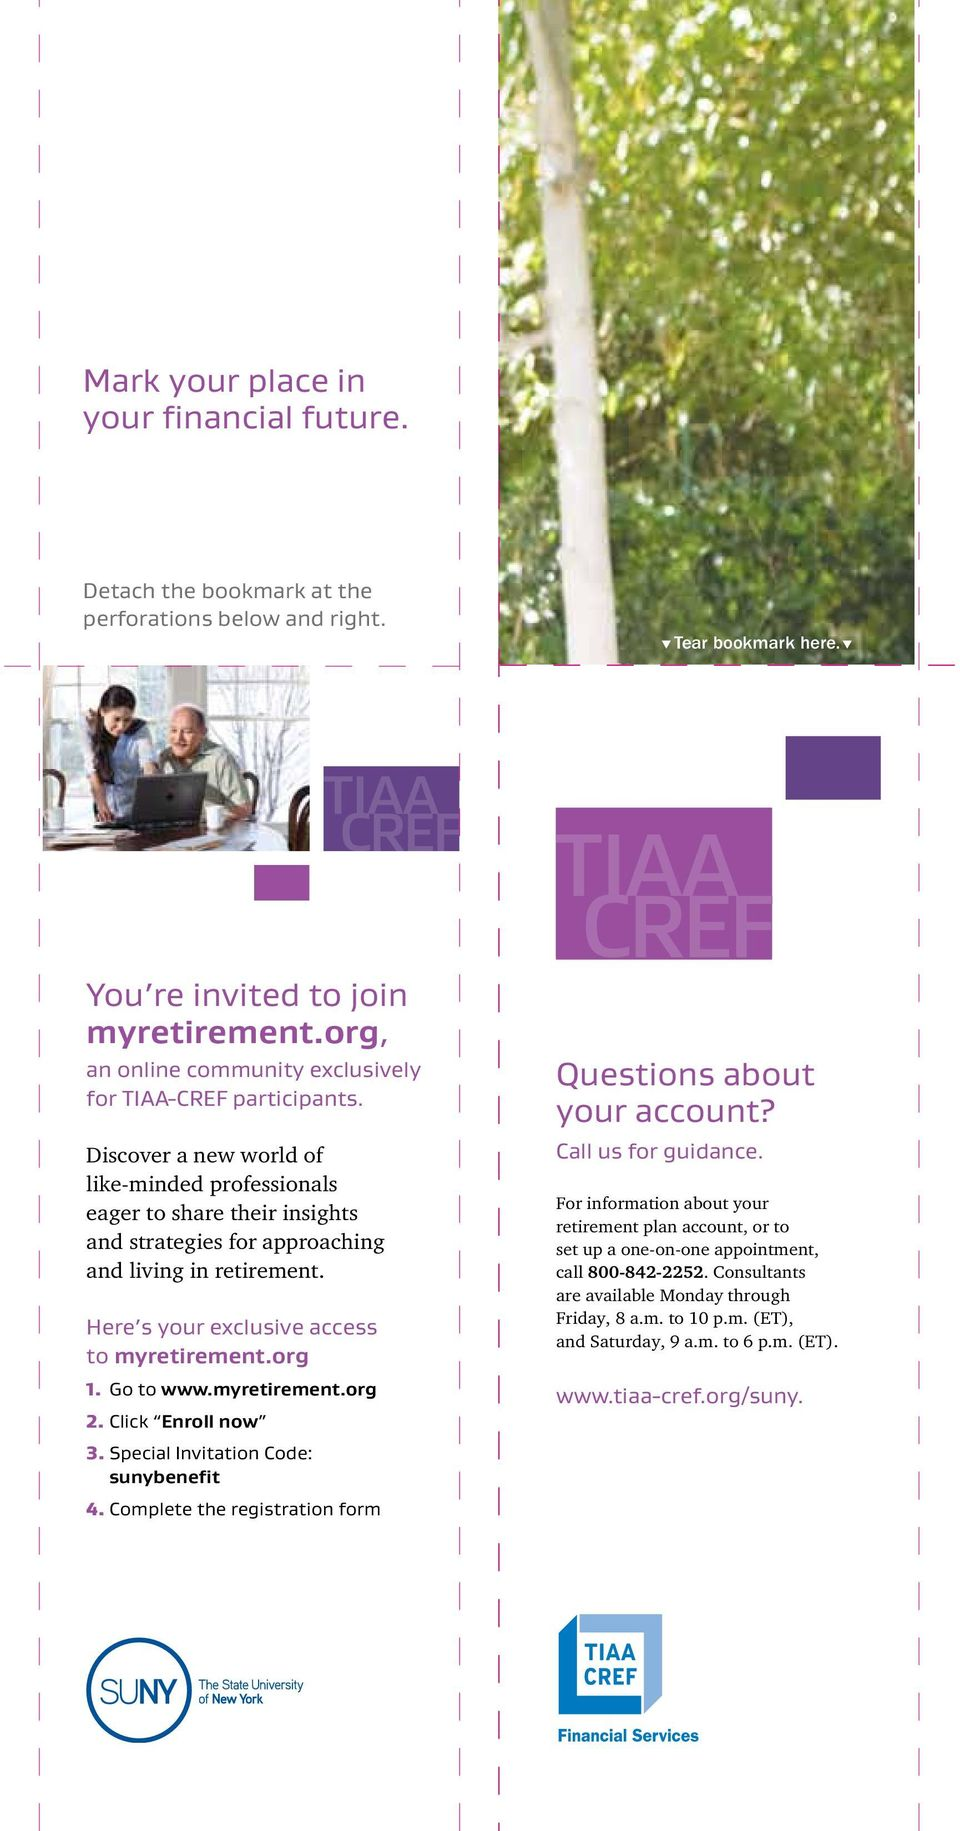 Discover a new world of like-minded professionals eager to share their insights and strategies for approaching and living in retirement. Here s your exclusive access to myretirement.org 1. Go to www.